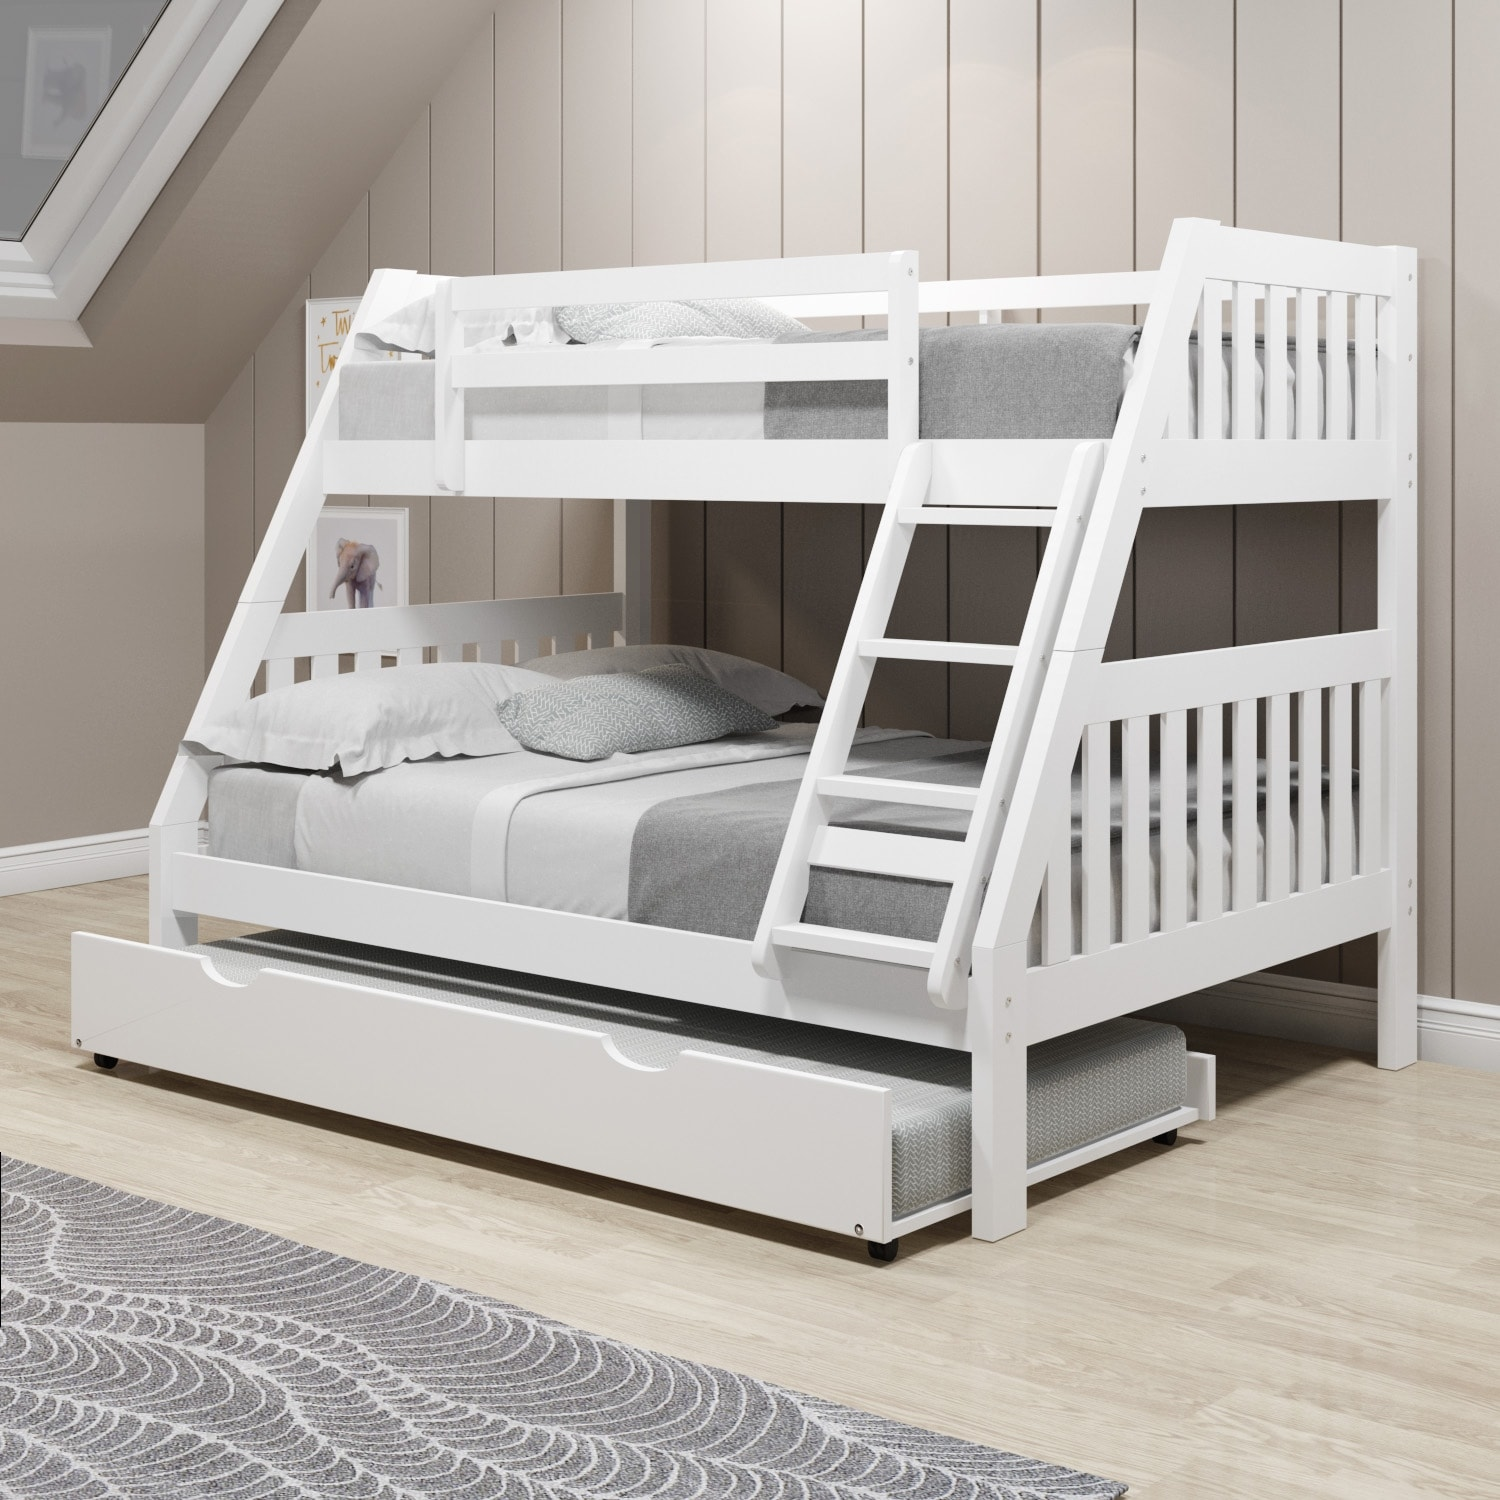 Twin Over Full White Pine Wood Mission Bunk Bed Overstock 31226782